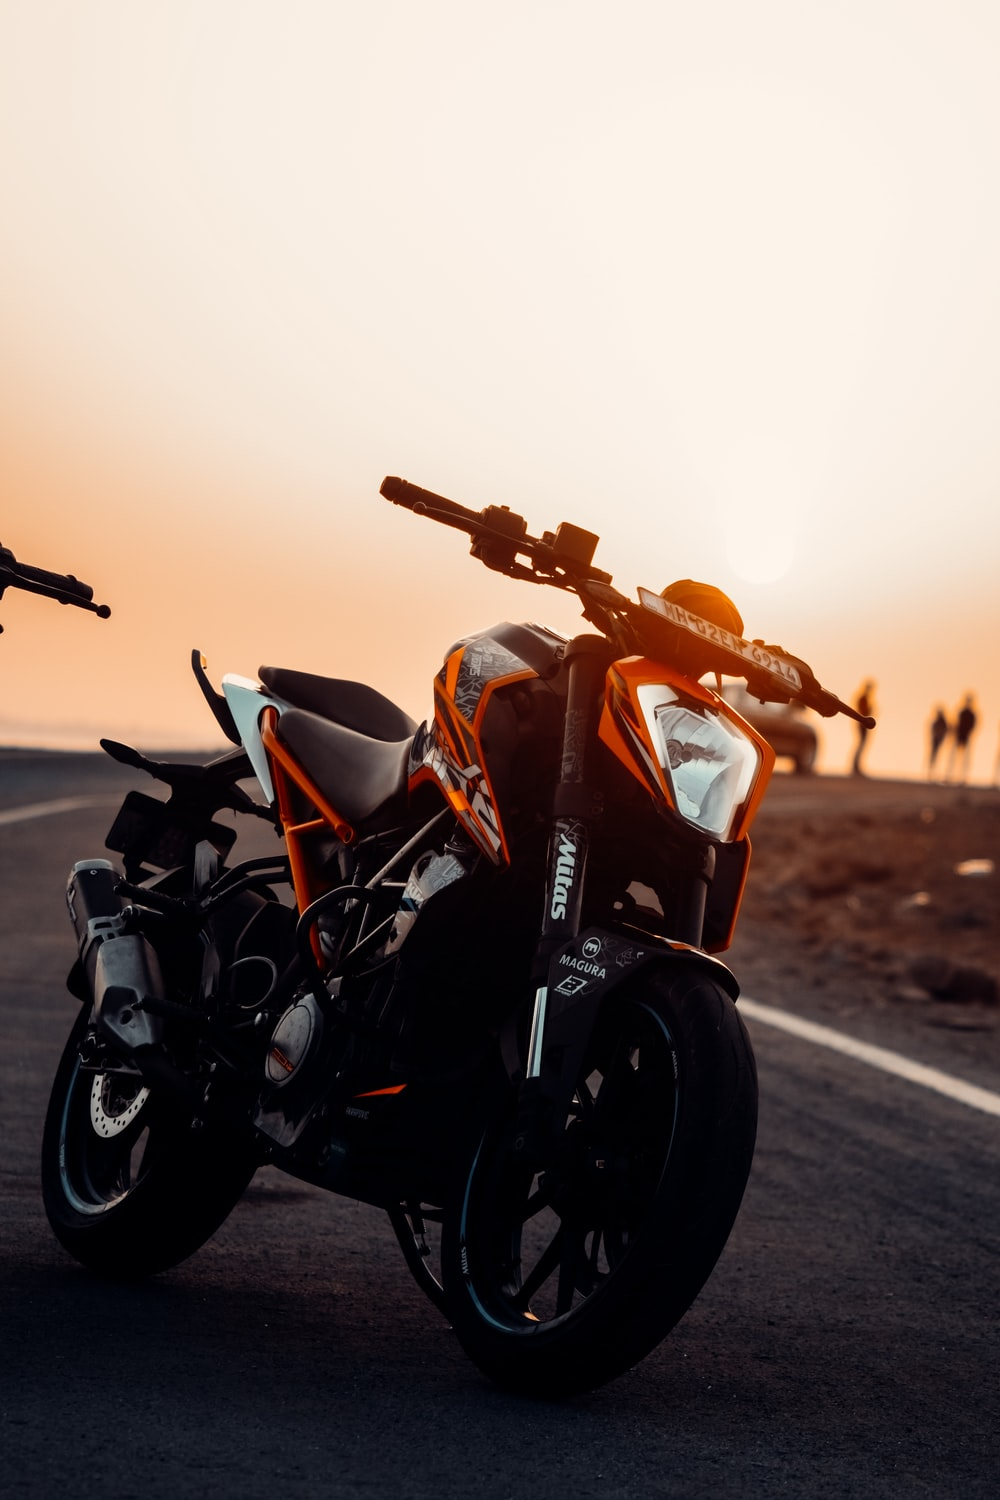 black and red motorcycle on road during sunset